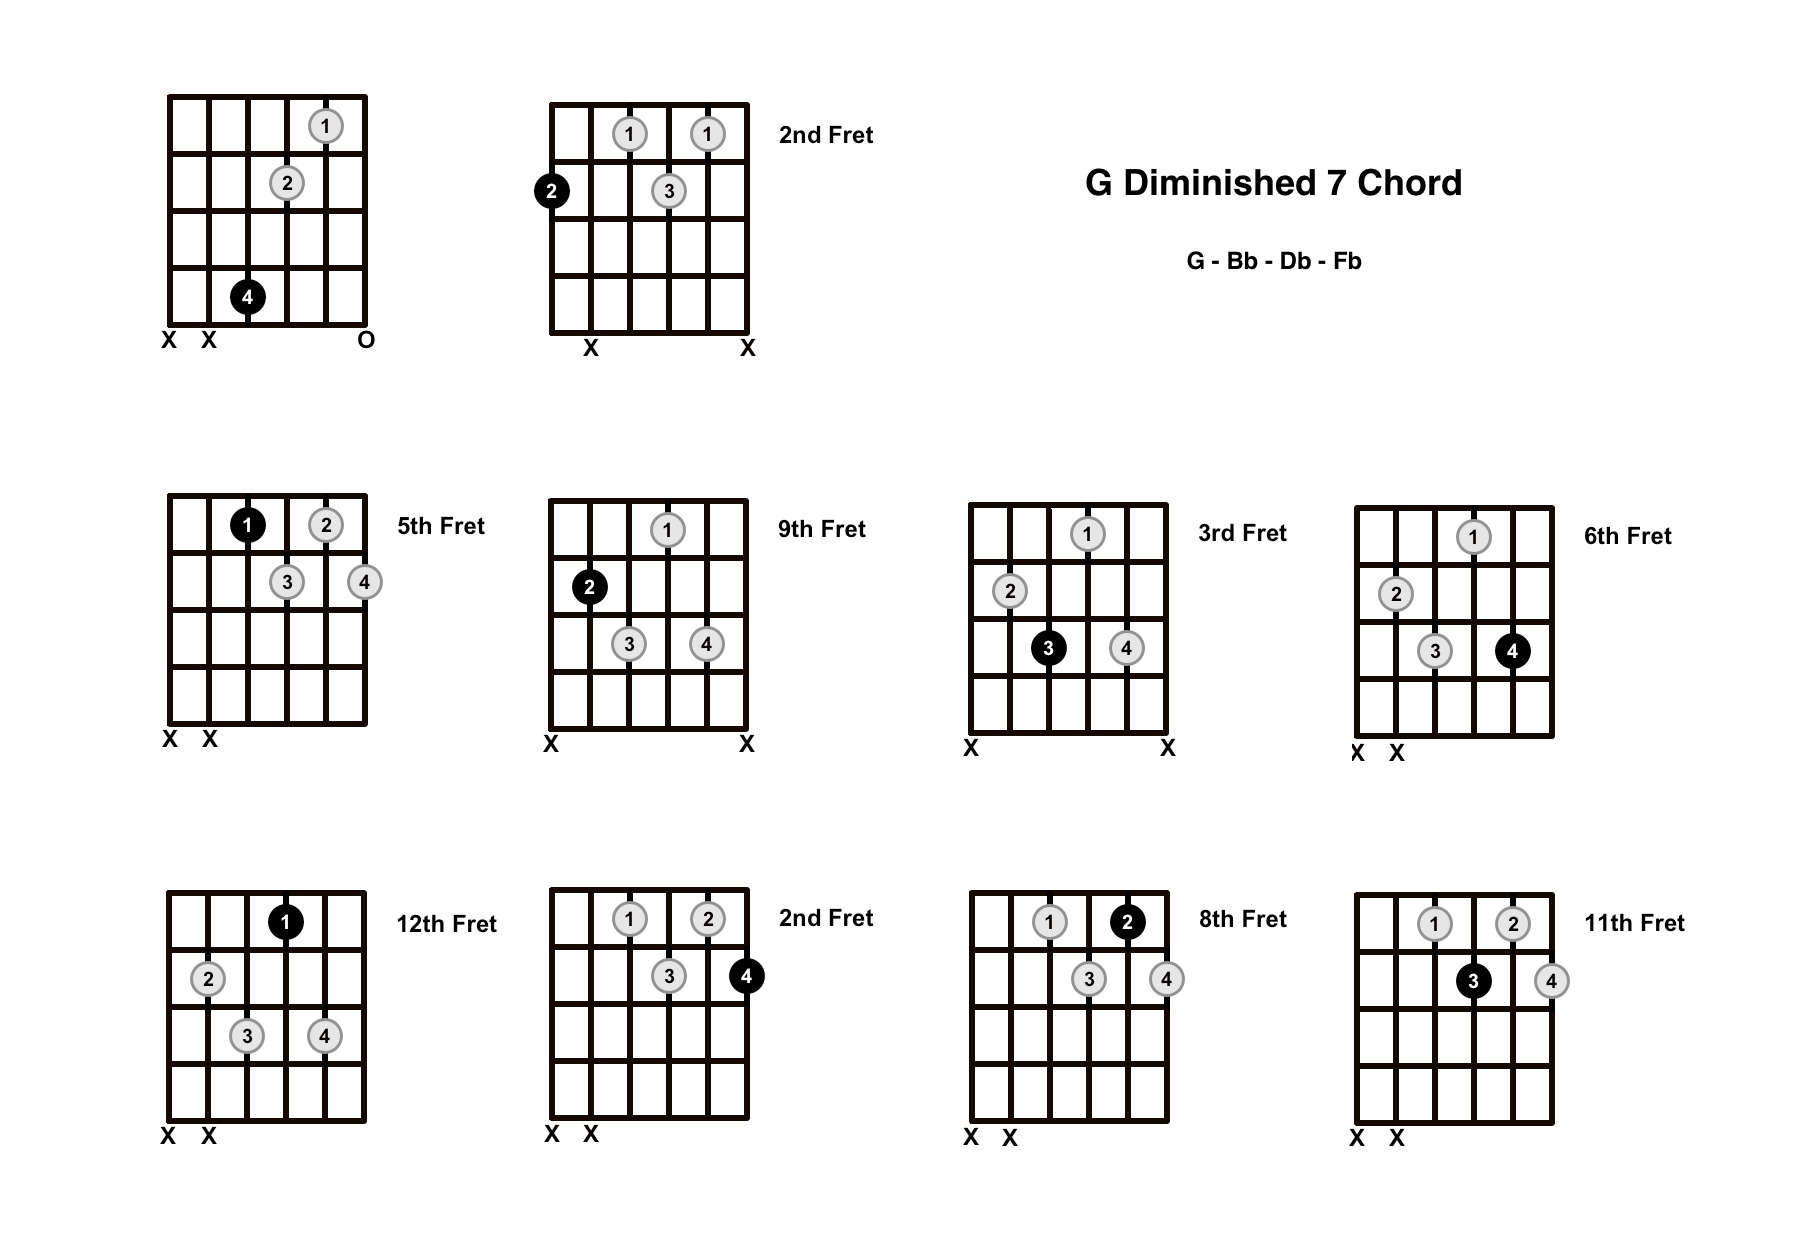 G Diminished 7 Chord On The Guitar (G Dim 7) – Diagrams, Finger Positions and Theory